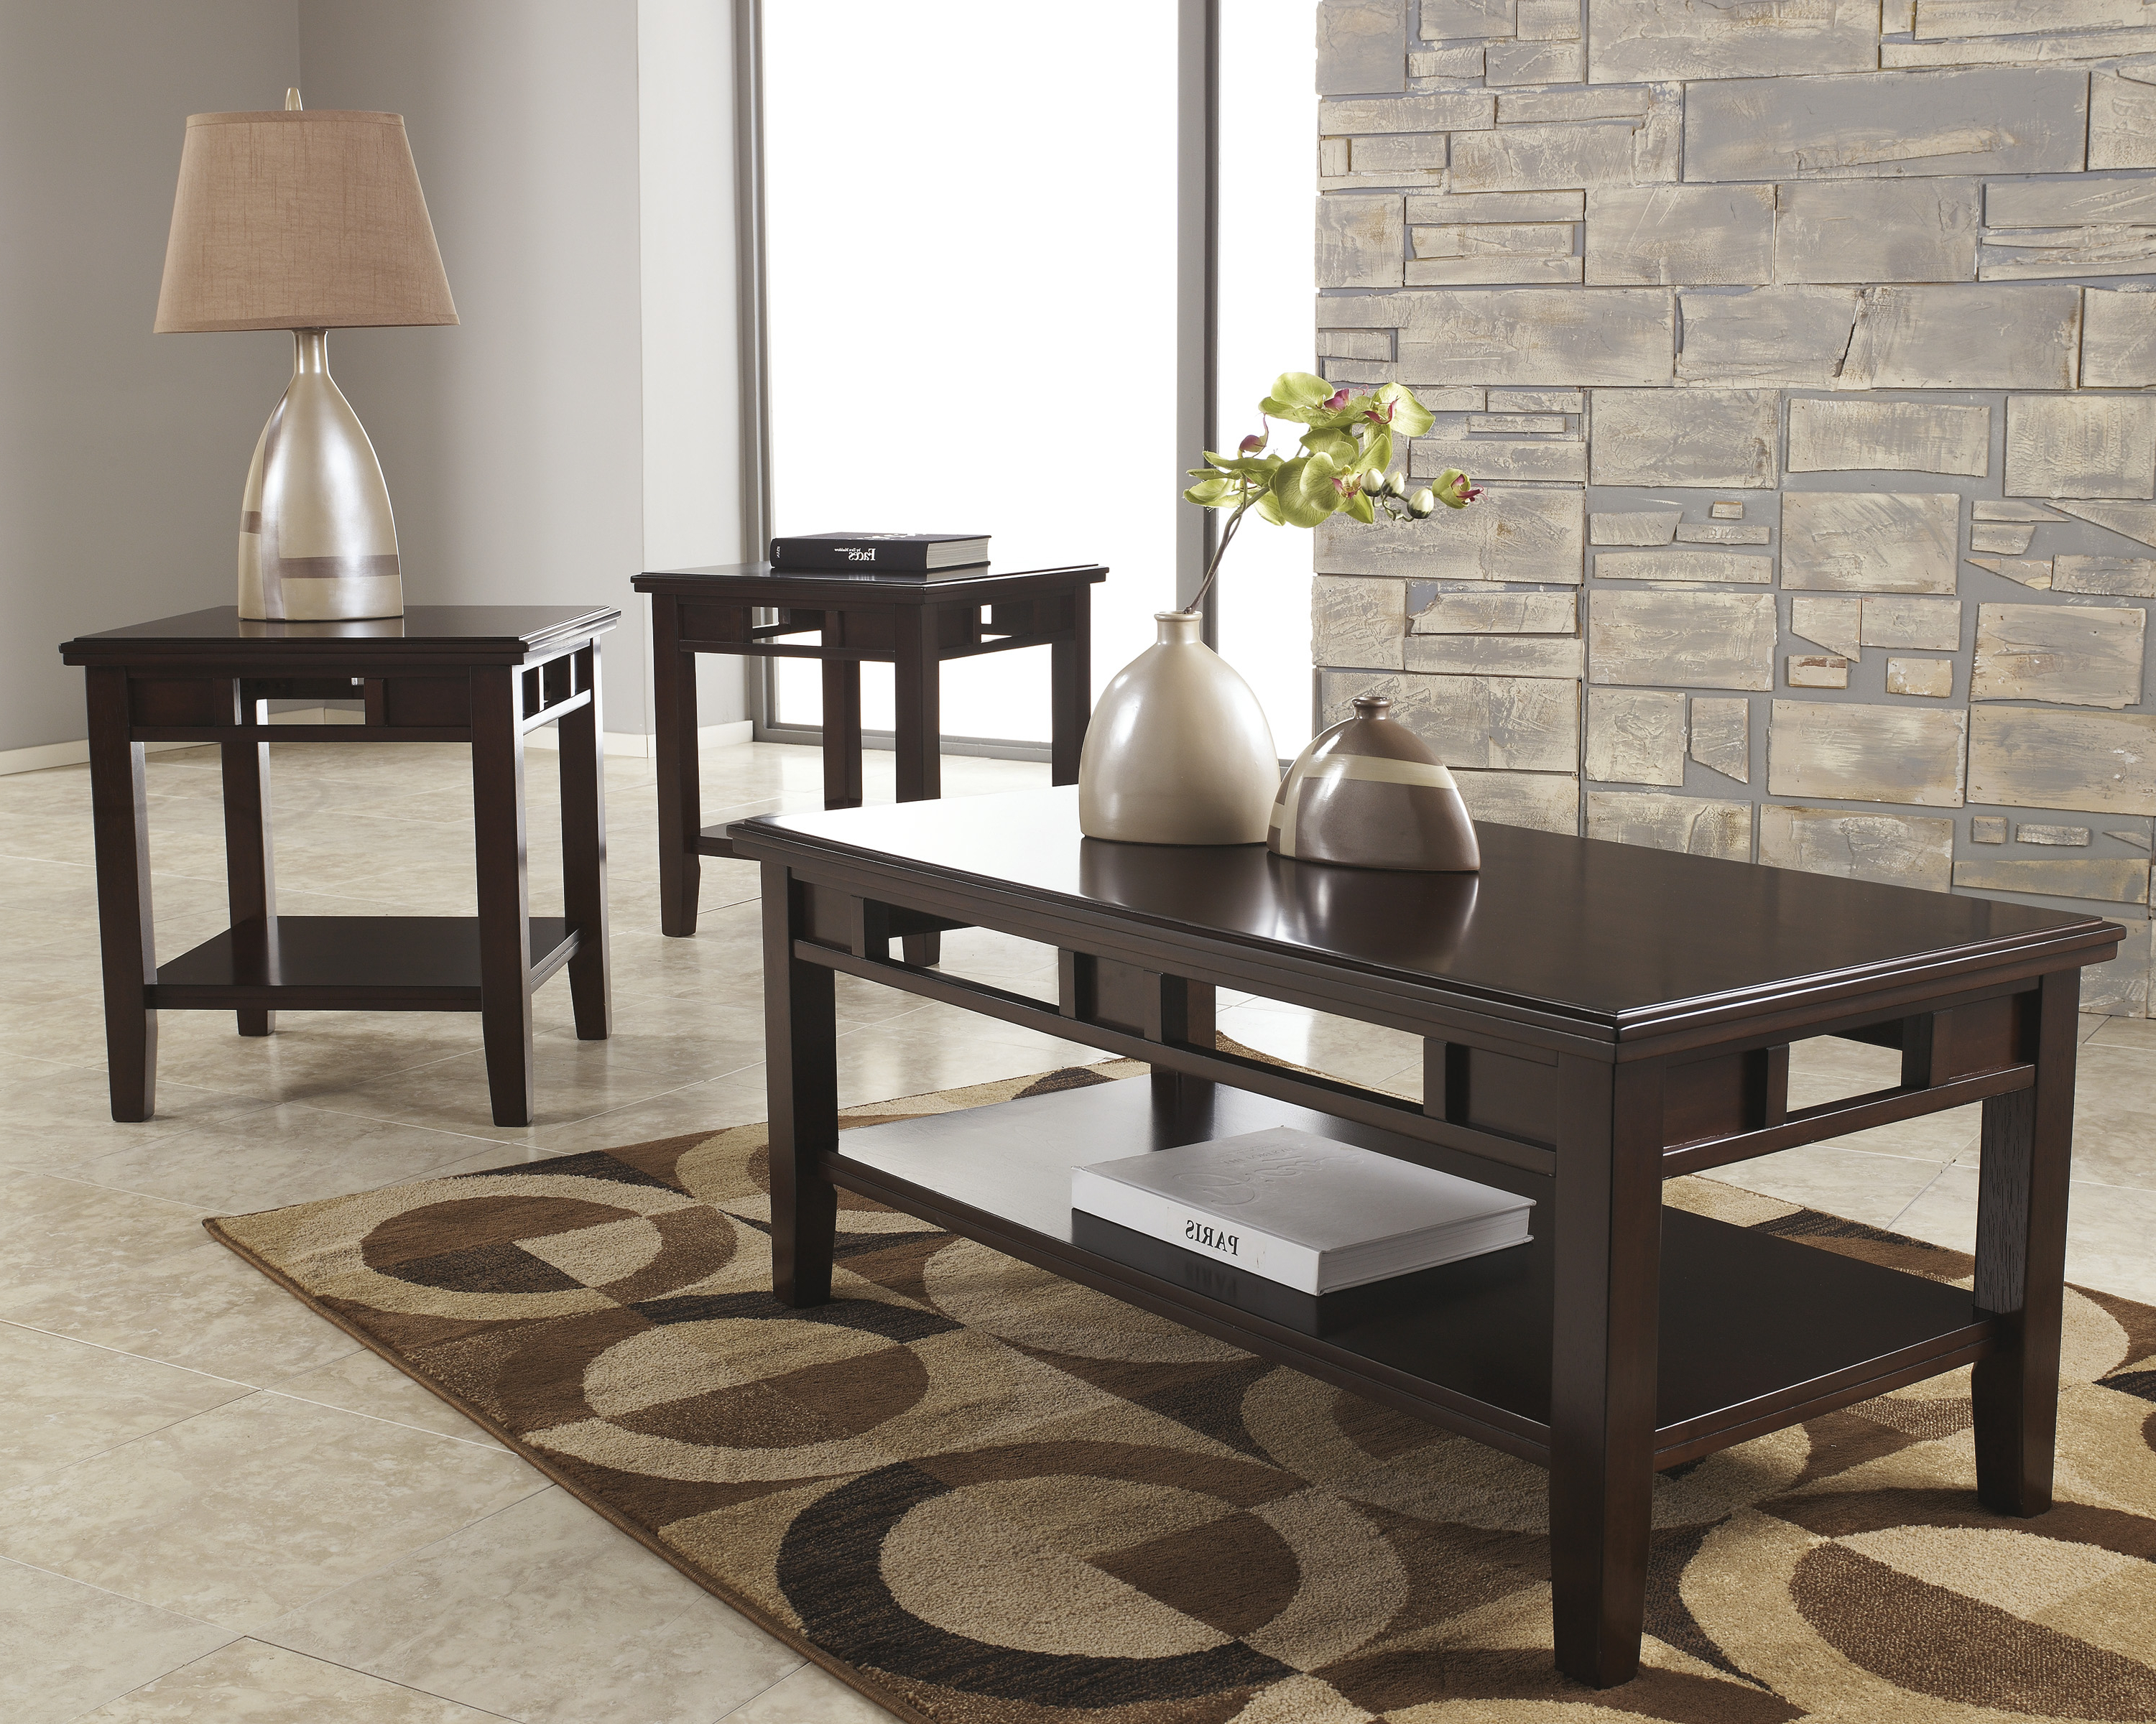 Current Logan Cocktail Tables In Logan Table Set – Brown's Furniture Showplace (View 6 of 20)